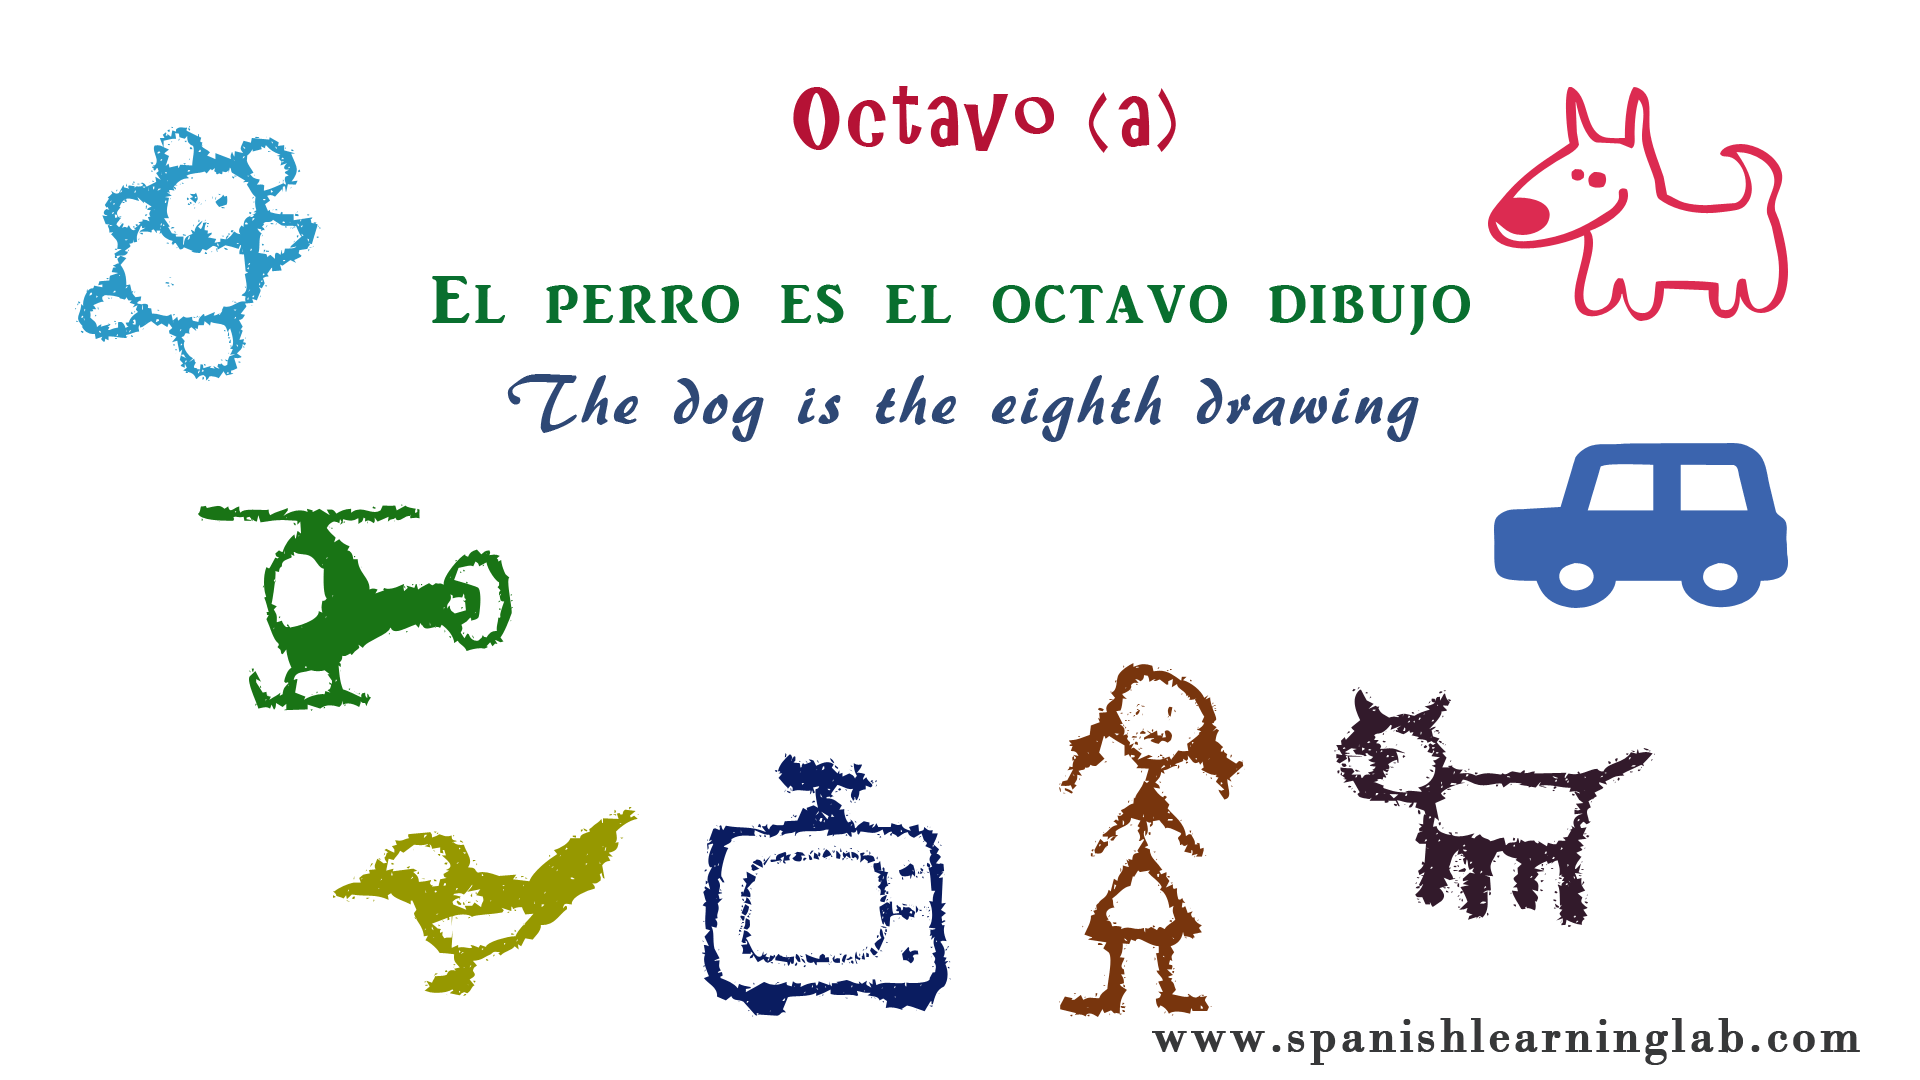 This Time We Are Using Some Dibujos Drawings To Show